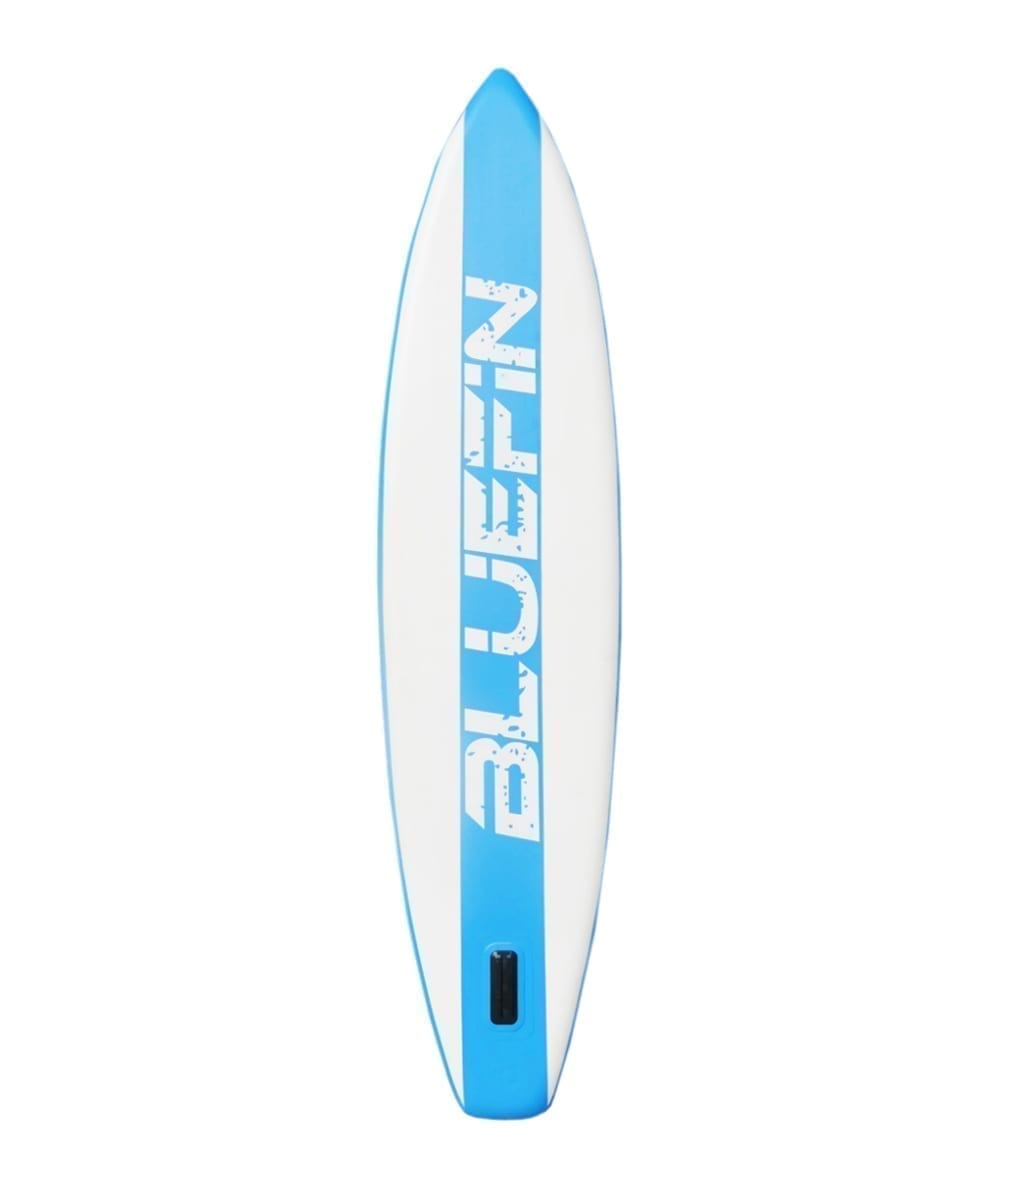 Bluefin inflatable stand up paddle board dimension